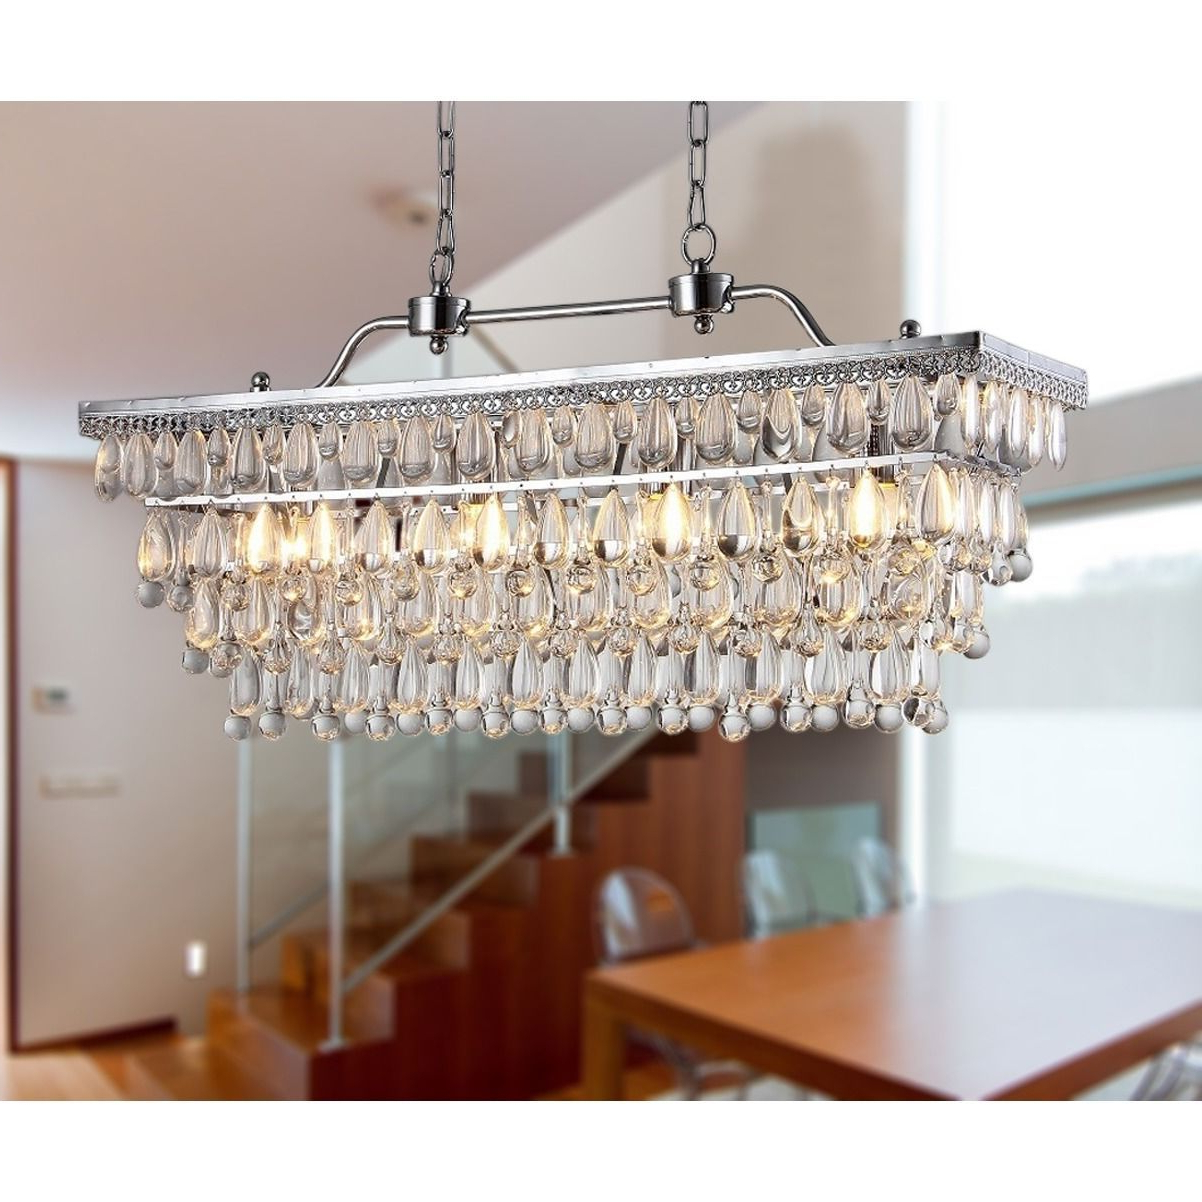 Gracelyn 8 Light Kitchen Island Pendants With Regard To 2020 Warehouse Of Tiffany Willow 4 Light Crystal 30 Inch Chrome (View 12 of 25)